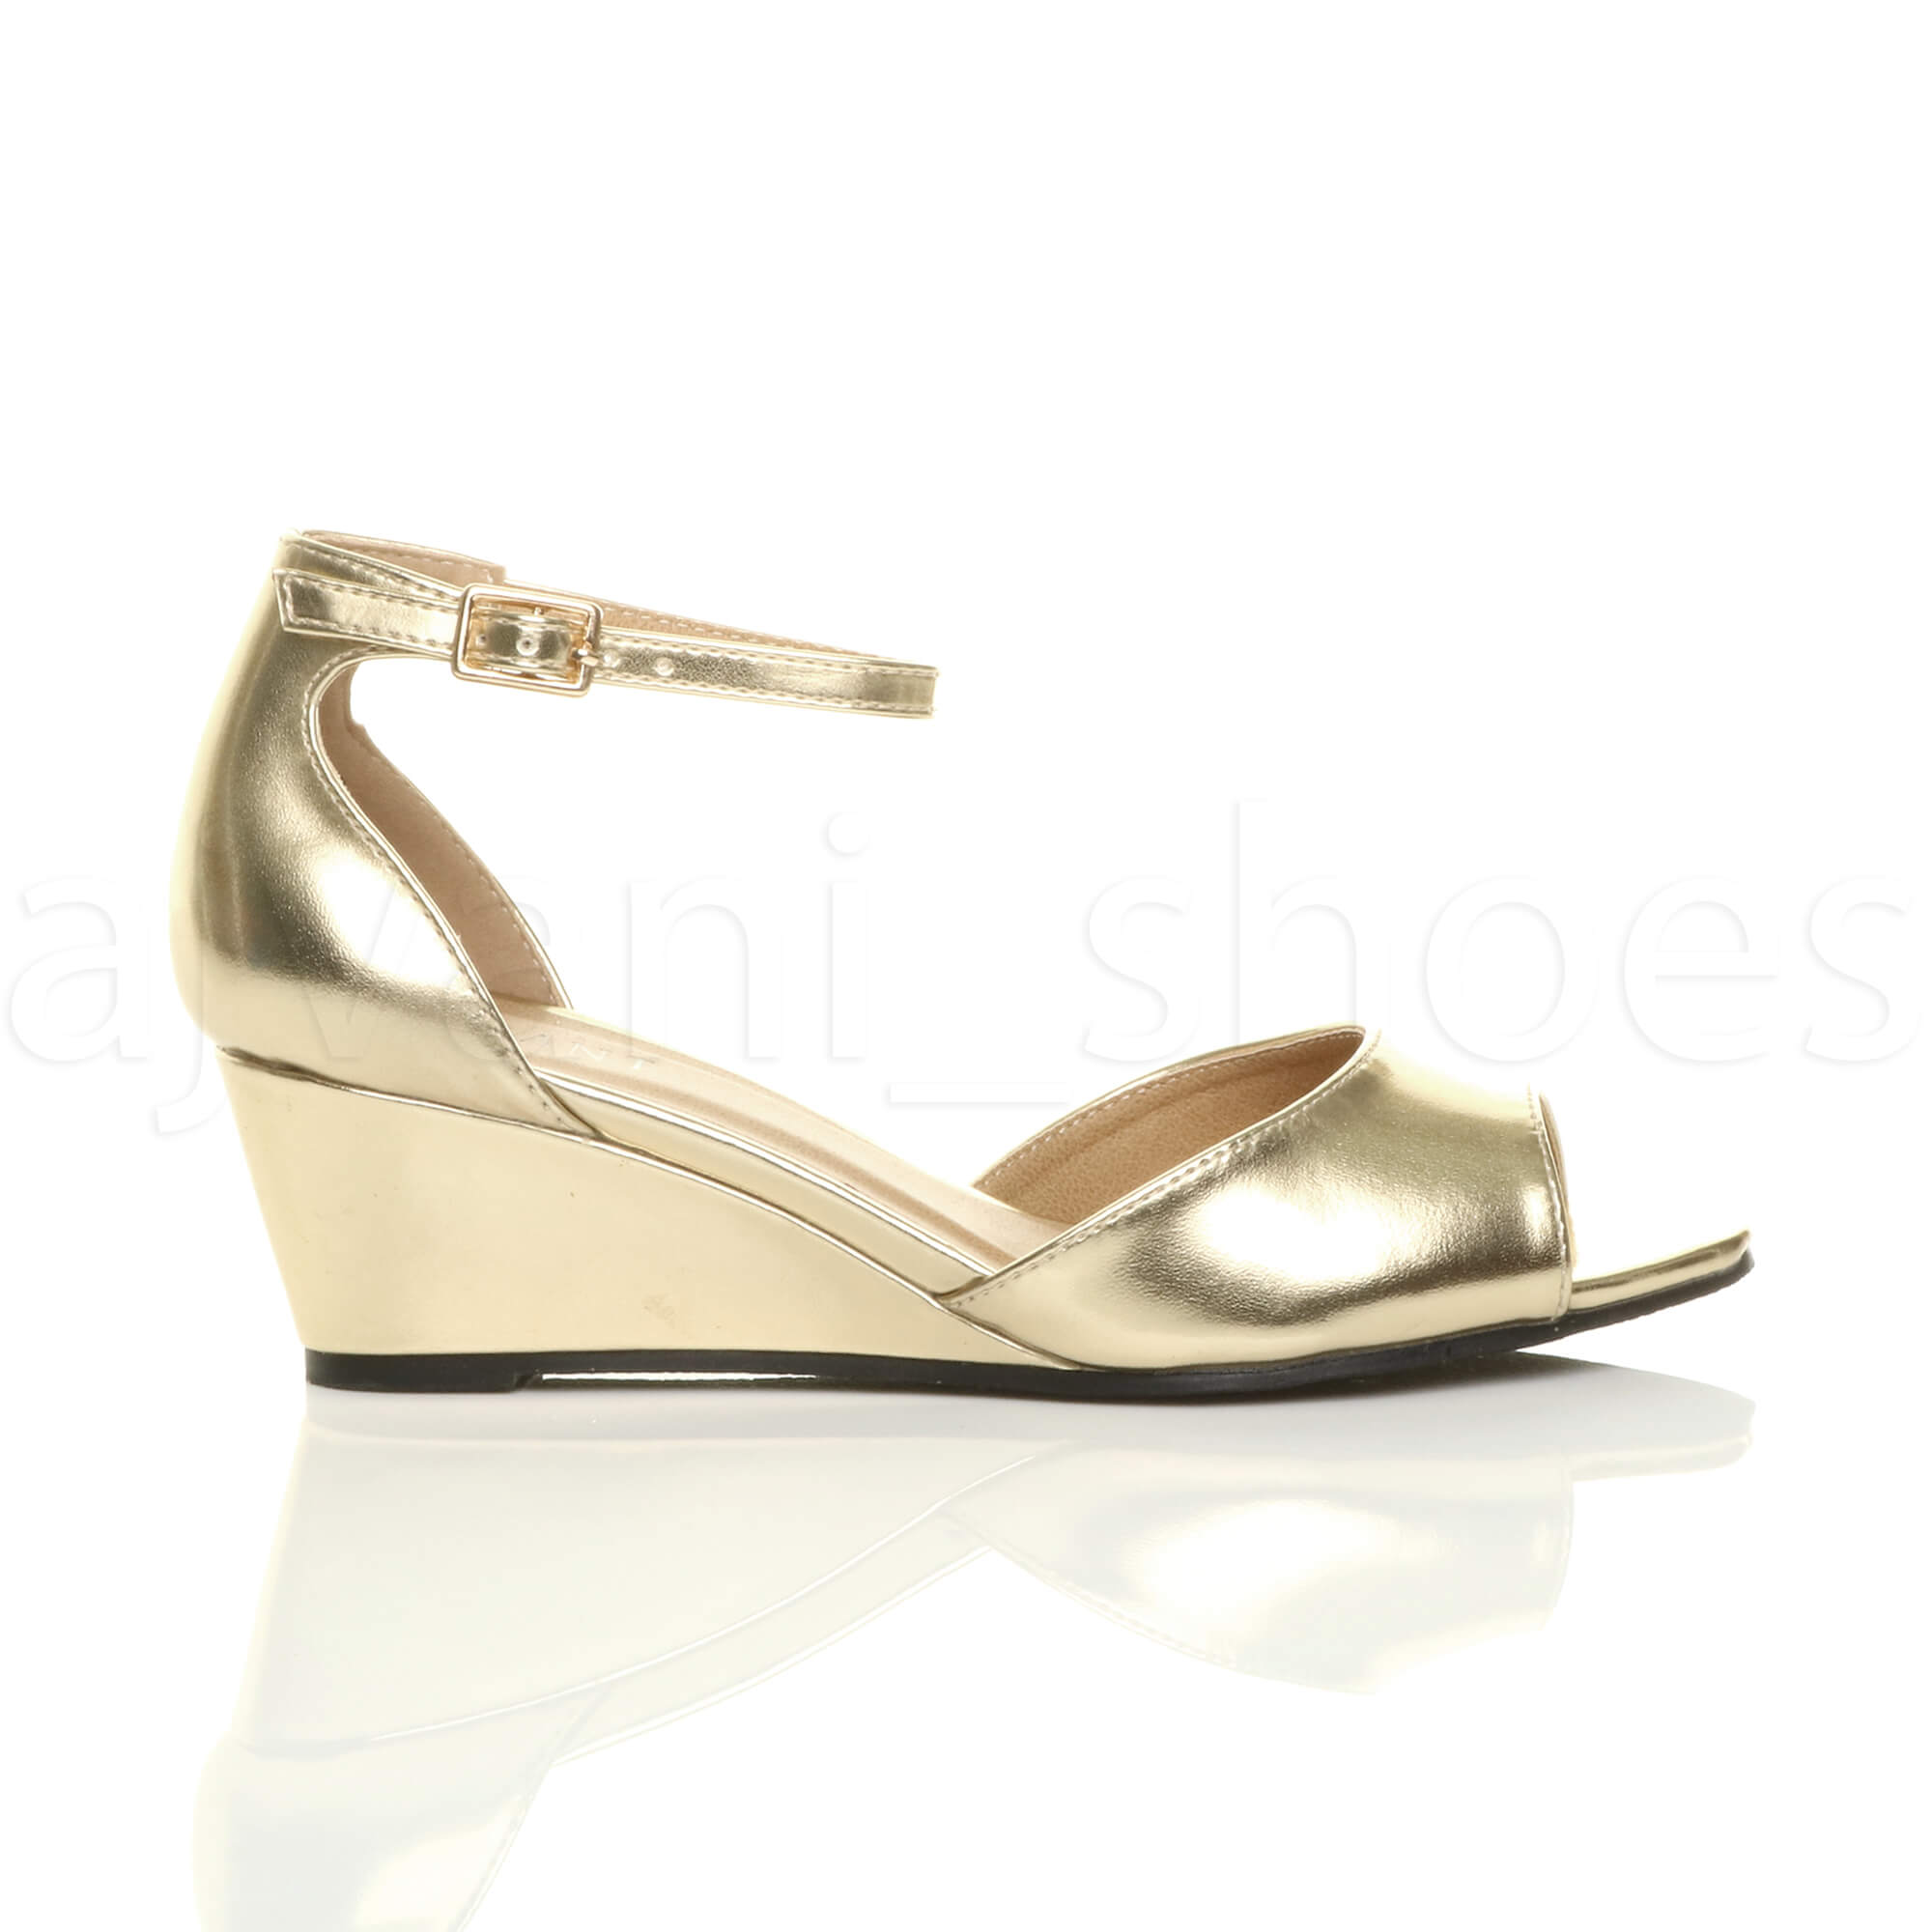 WOMENS-LADIES-LOW-MID-WEDGE-HEEL-ANKLE-STRAP-SMART-CASUAL-EVENING-SANDALS-SIZE thumbnail 59